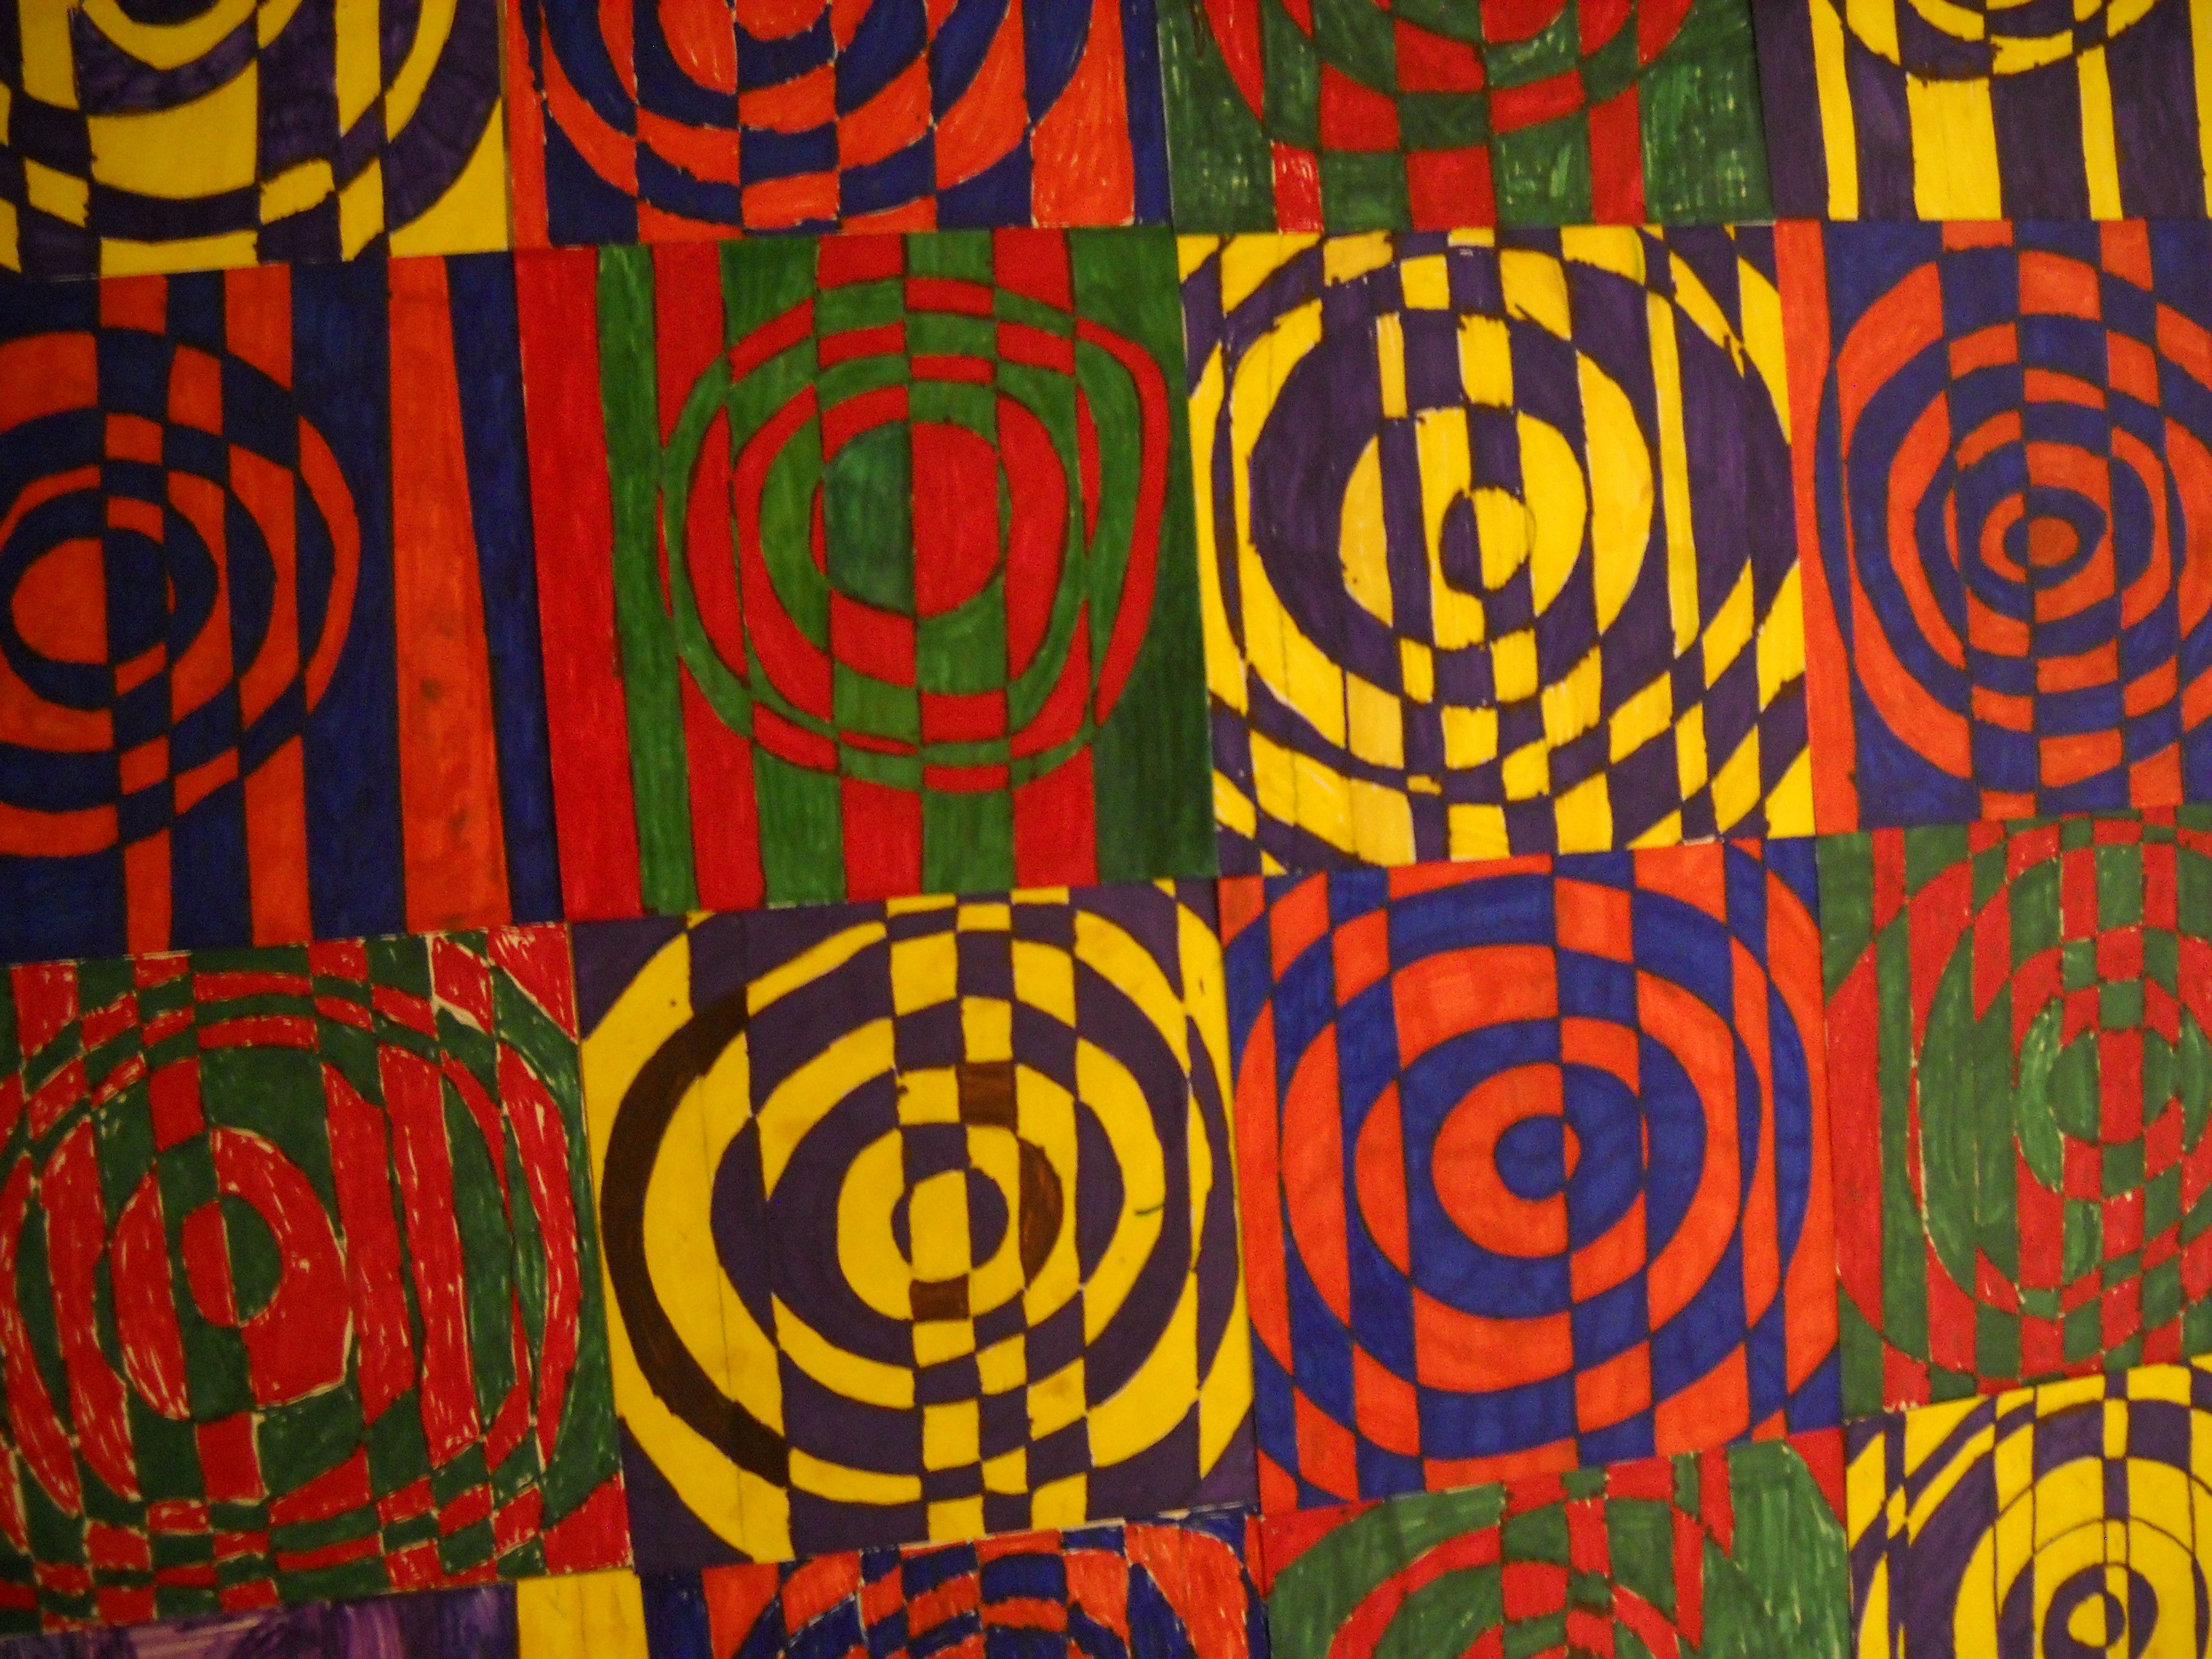 Complementary Colored Op Art Draw 7 10 Vertical Lines